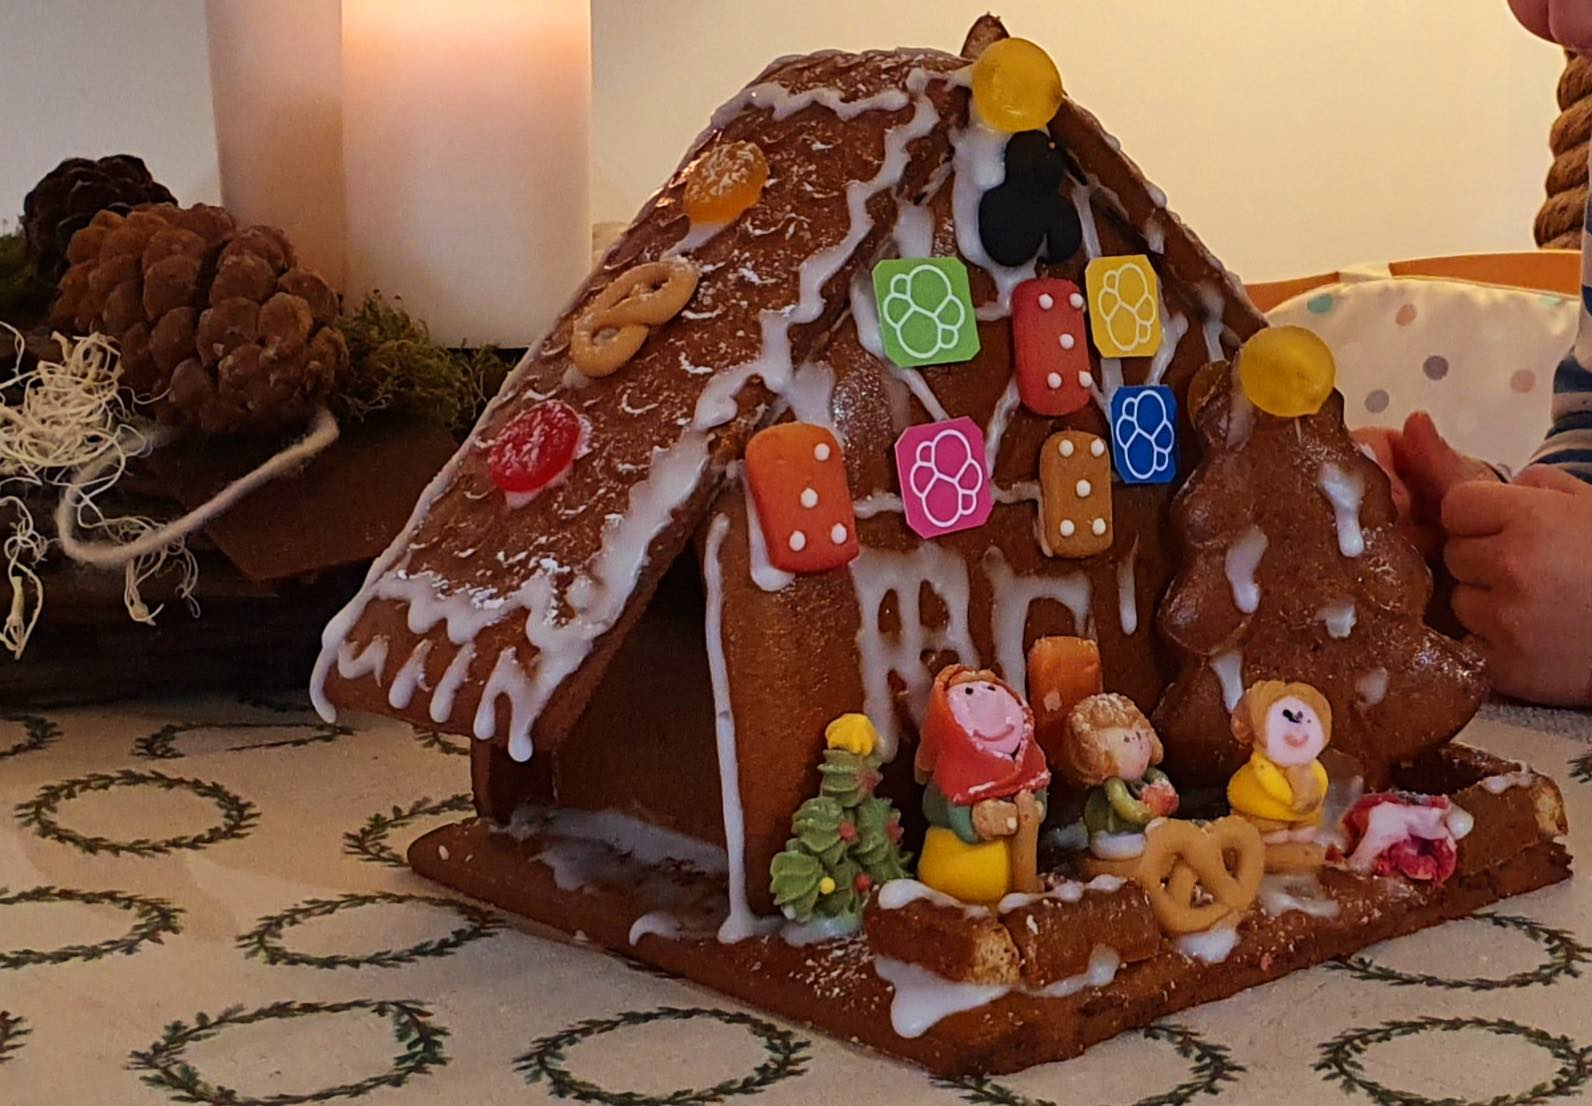 Gingerbread house with a manger